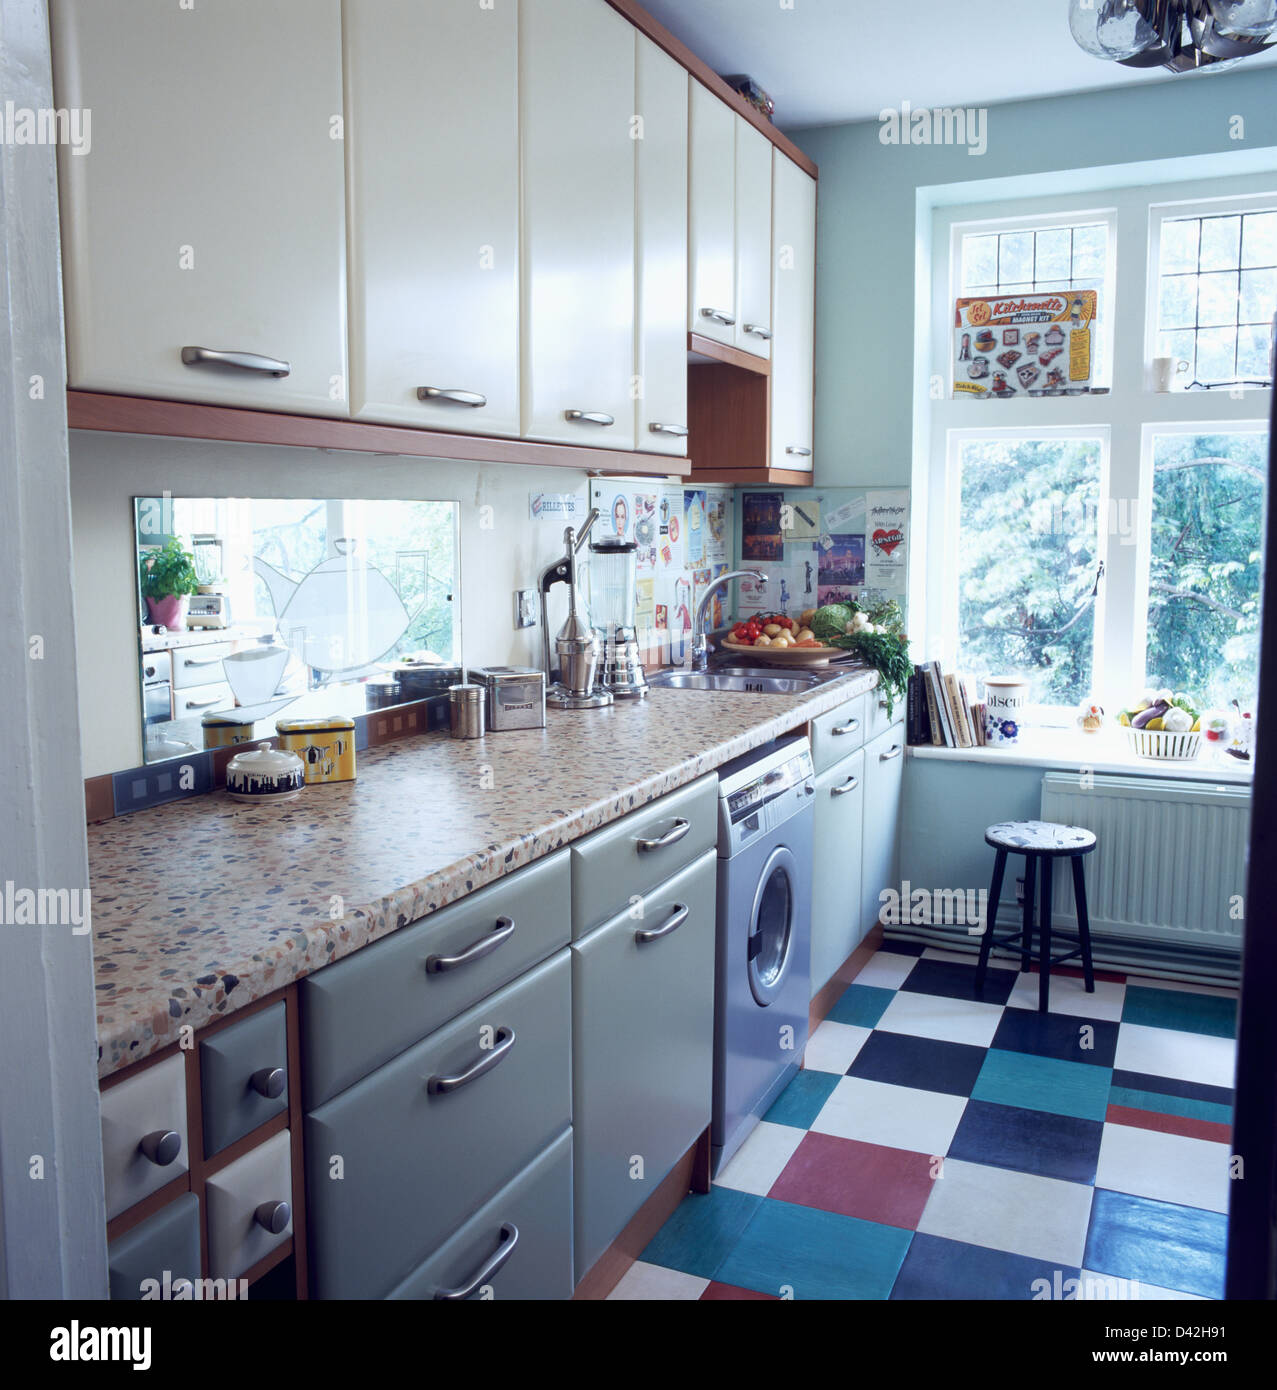 Colorful vinyl tiled floor in kitchen with Corian worktop on pale ...